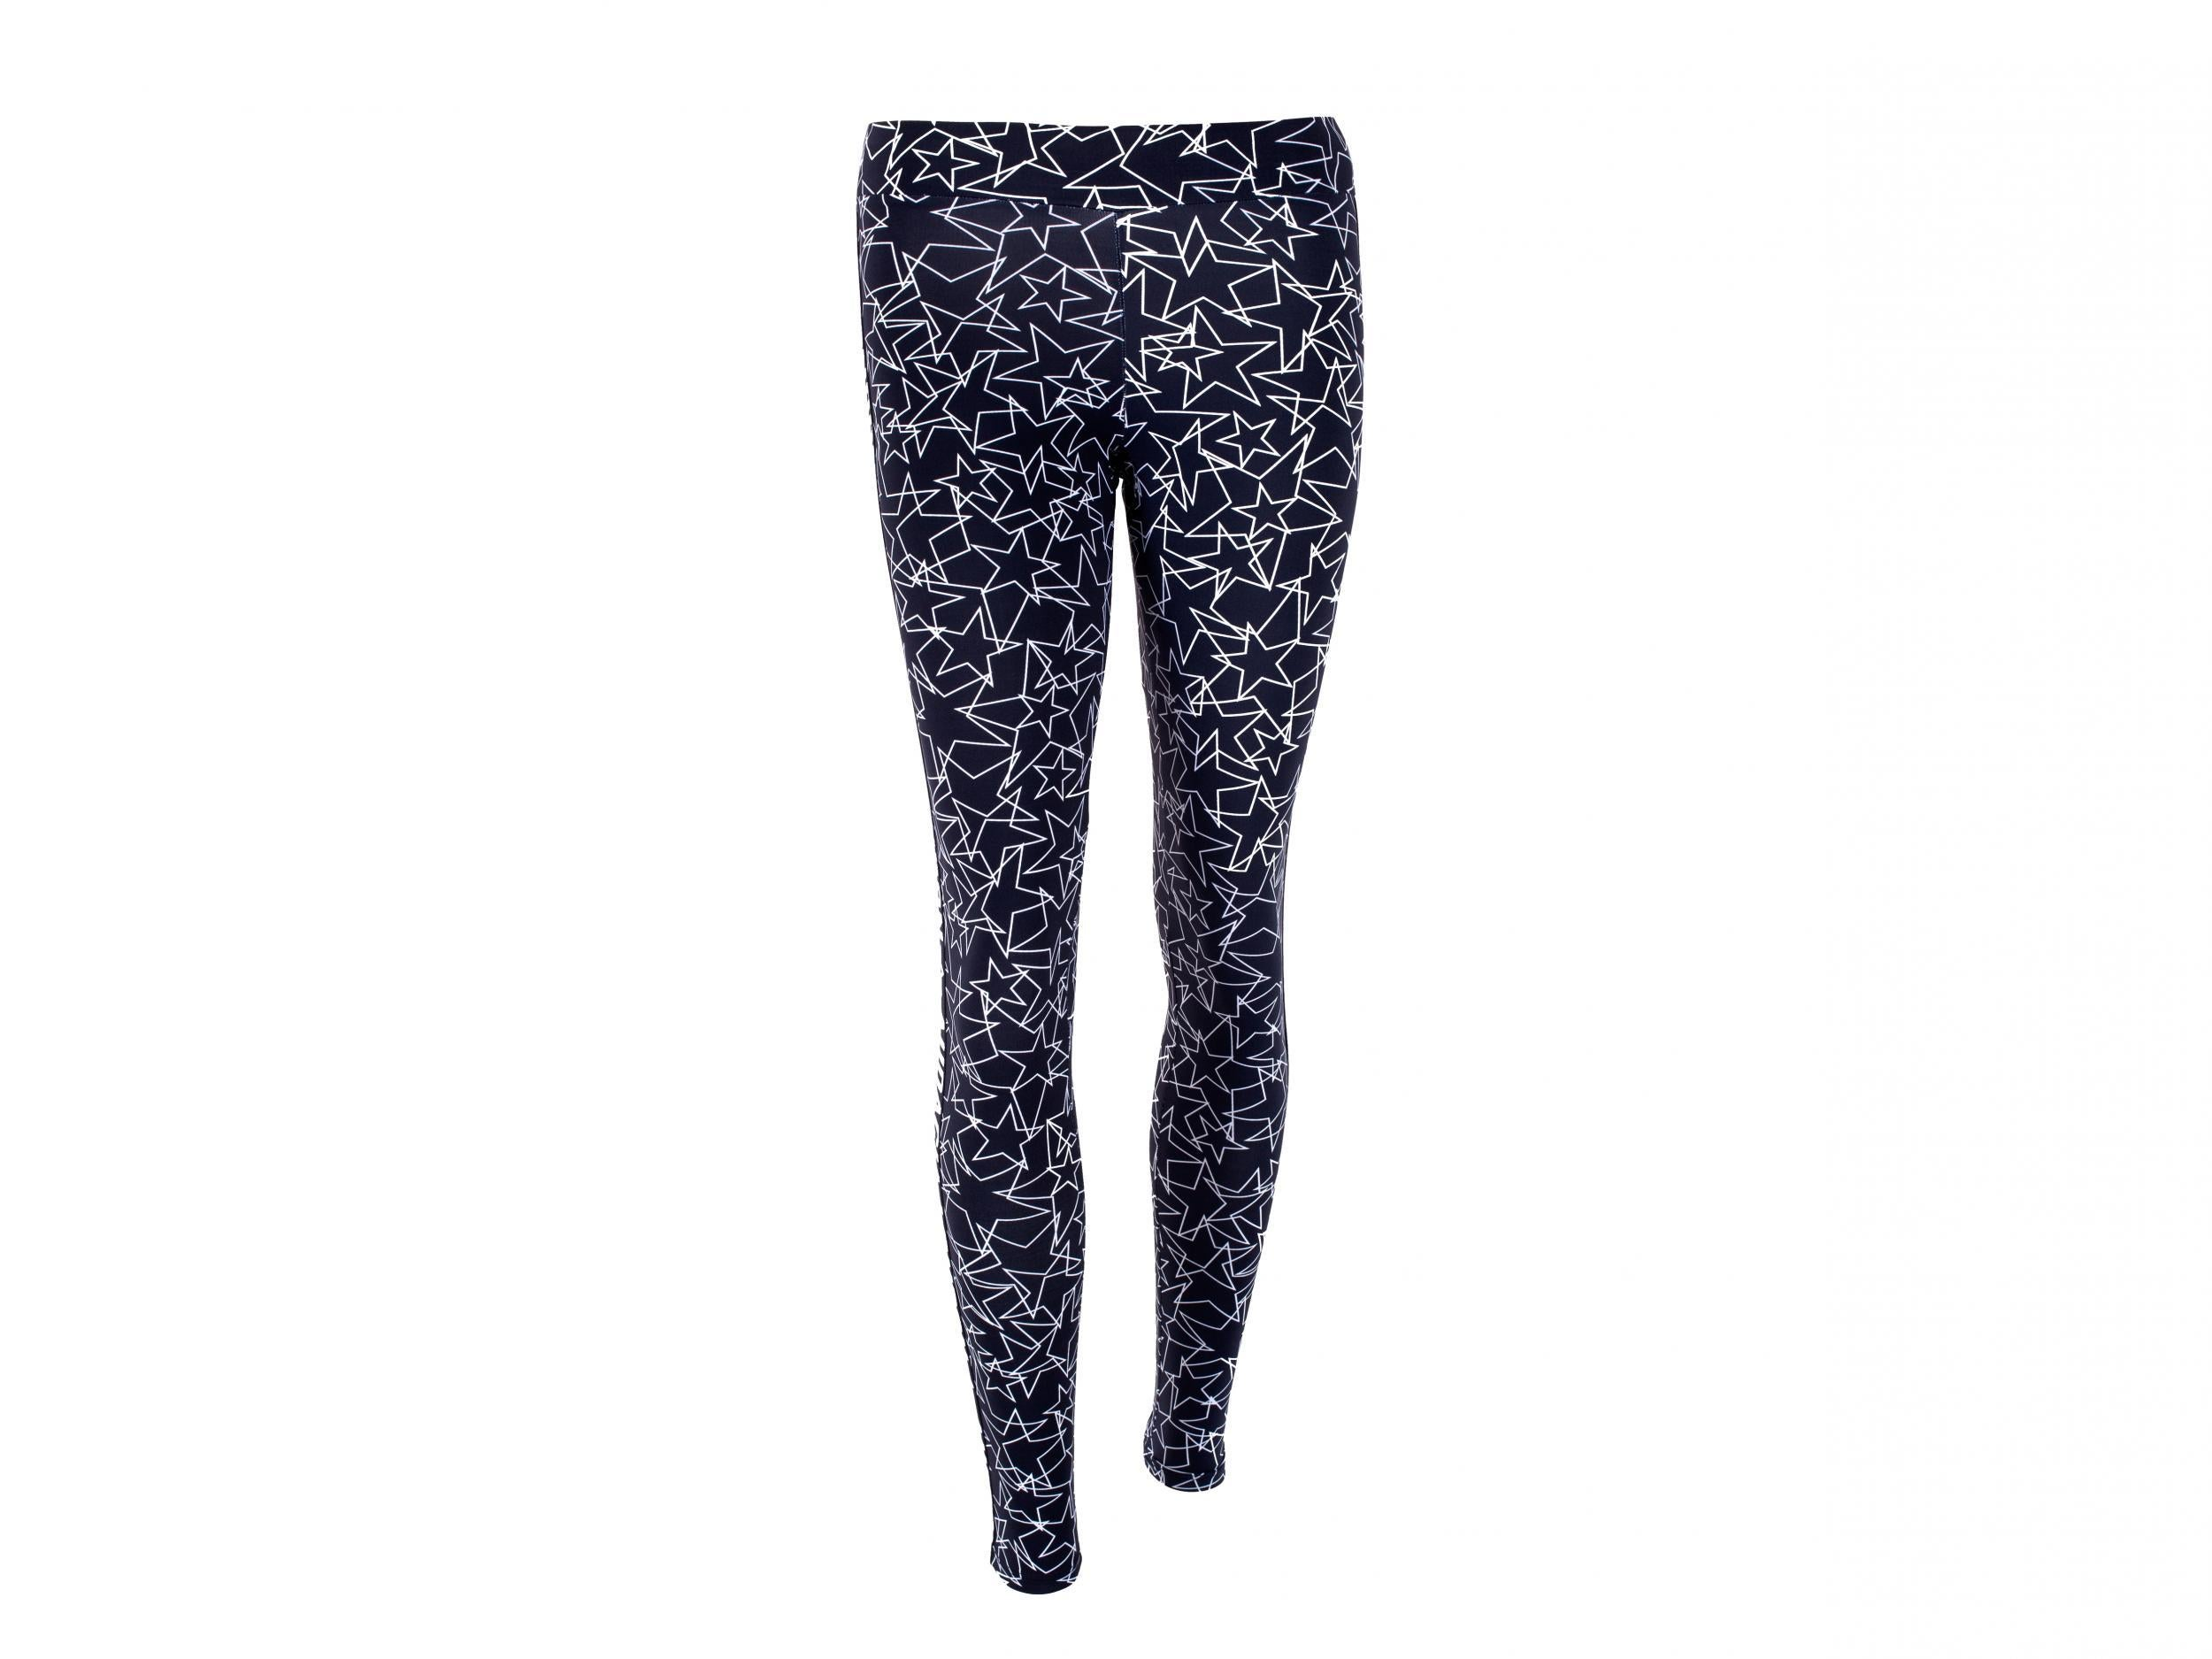 15 best women's running tights | The Independent